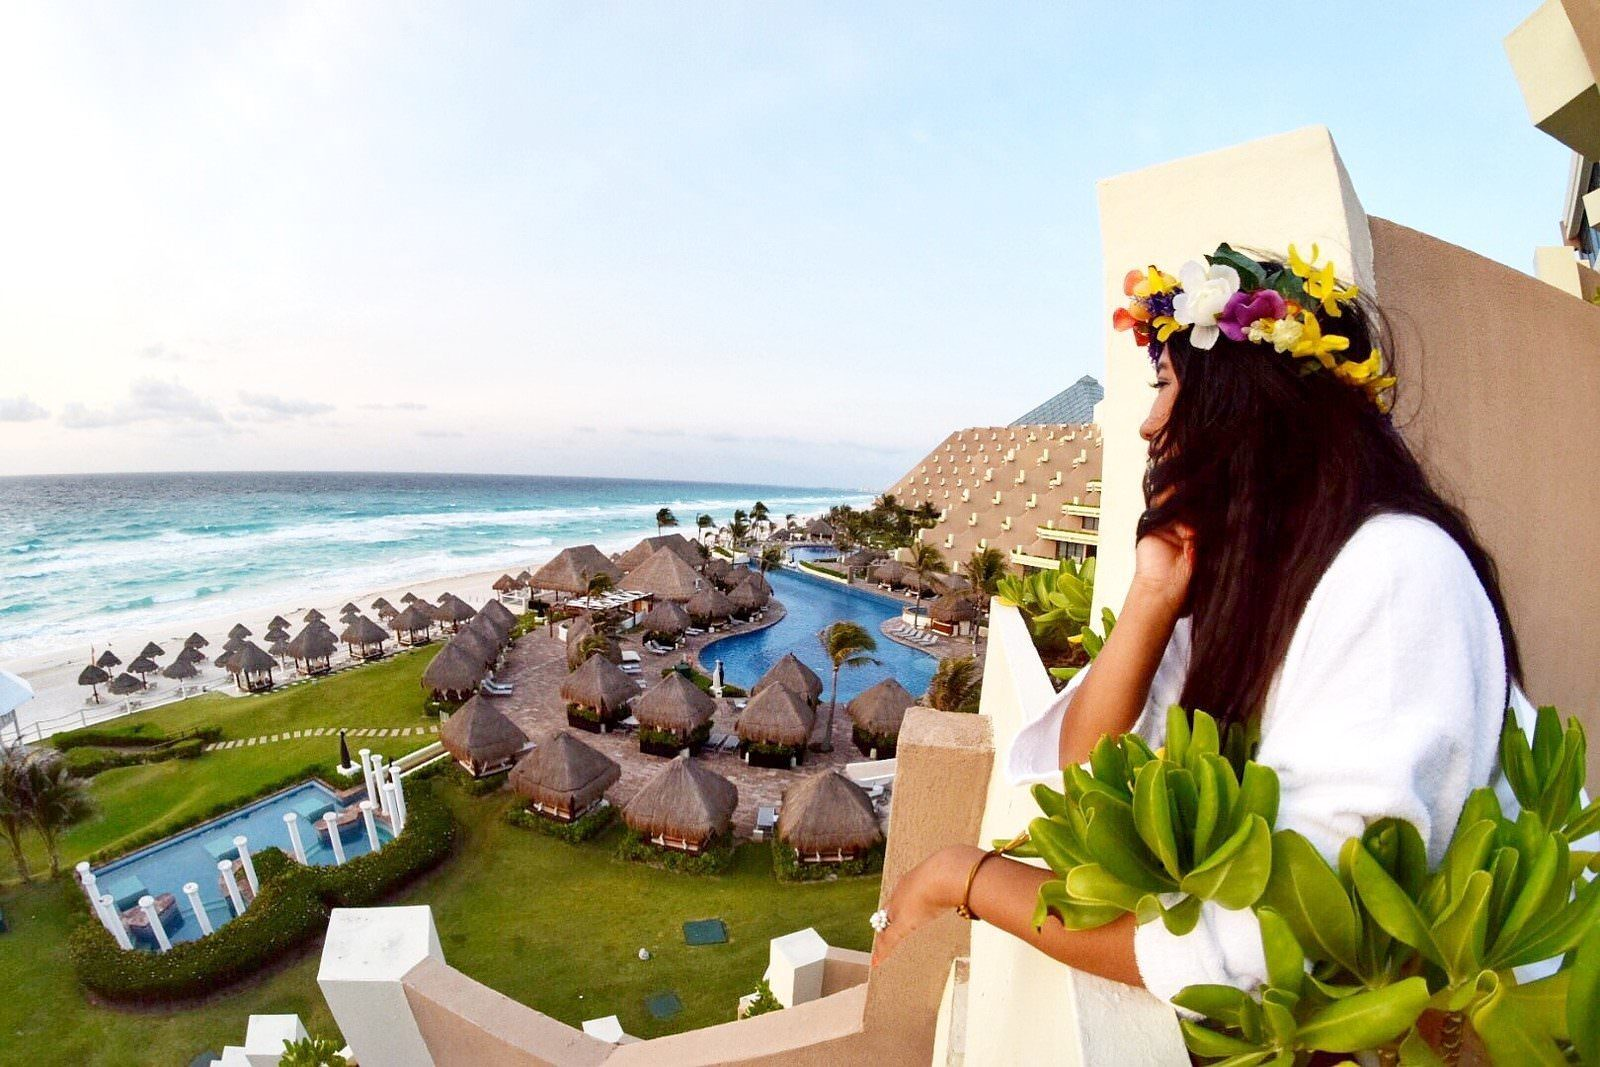 View from our Room in Paradisus Cancun - All Inclusive Luxury Resort Experience